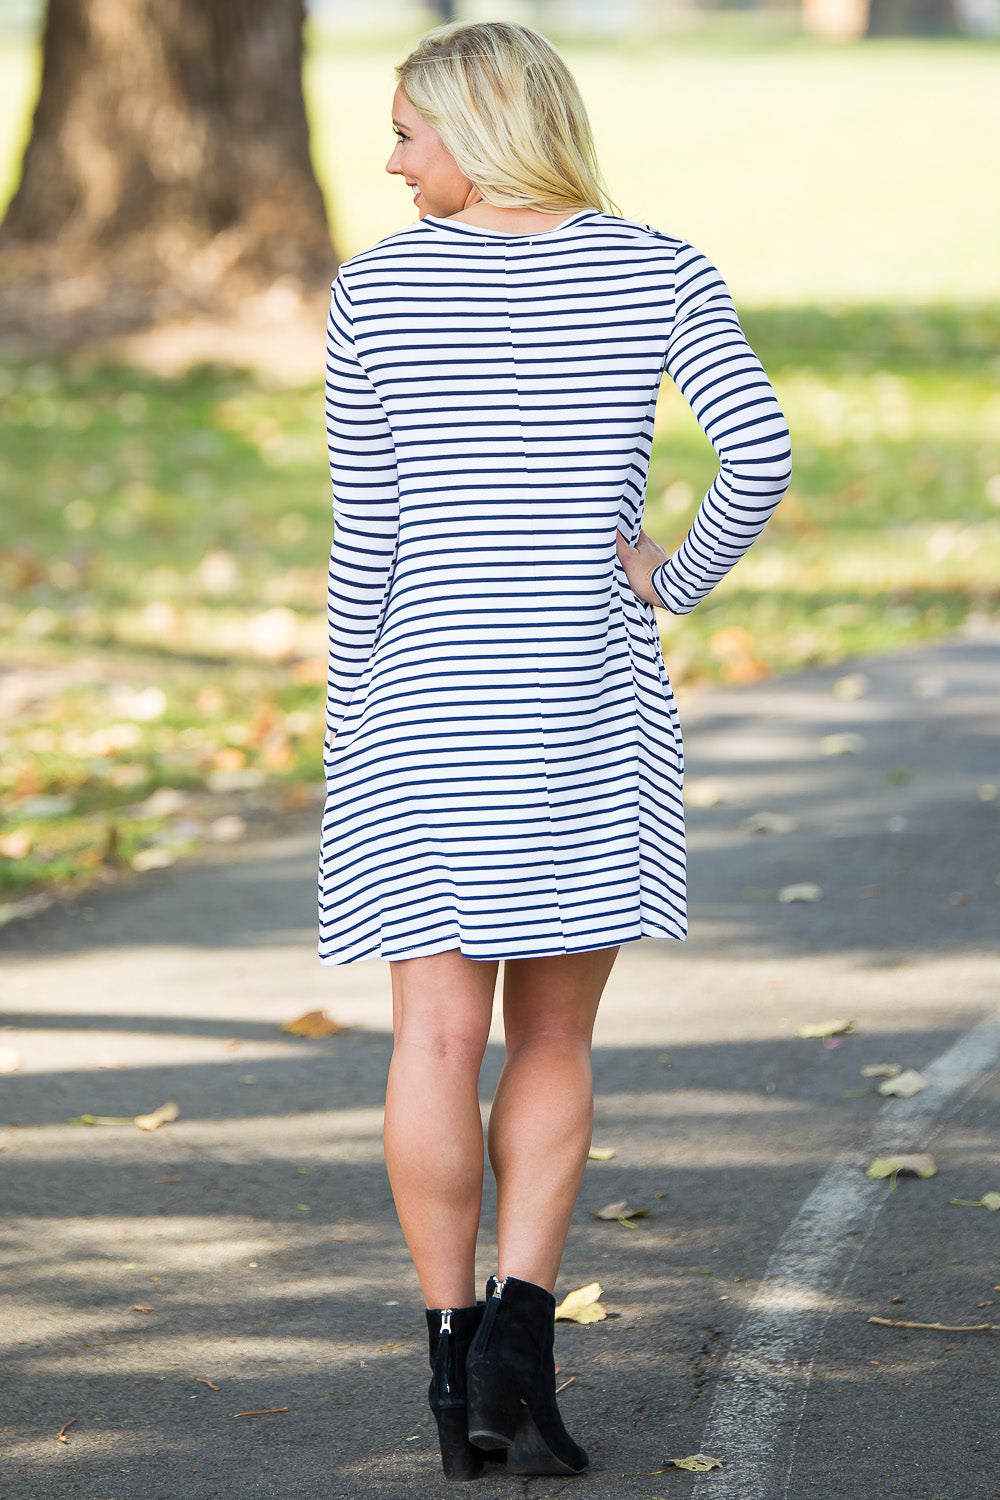 Piko Long Sleeve Tiny Stripe Swing Dress - White/Navy - Piko Clothing